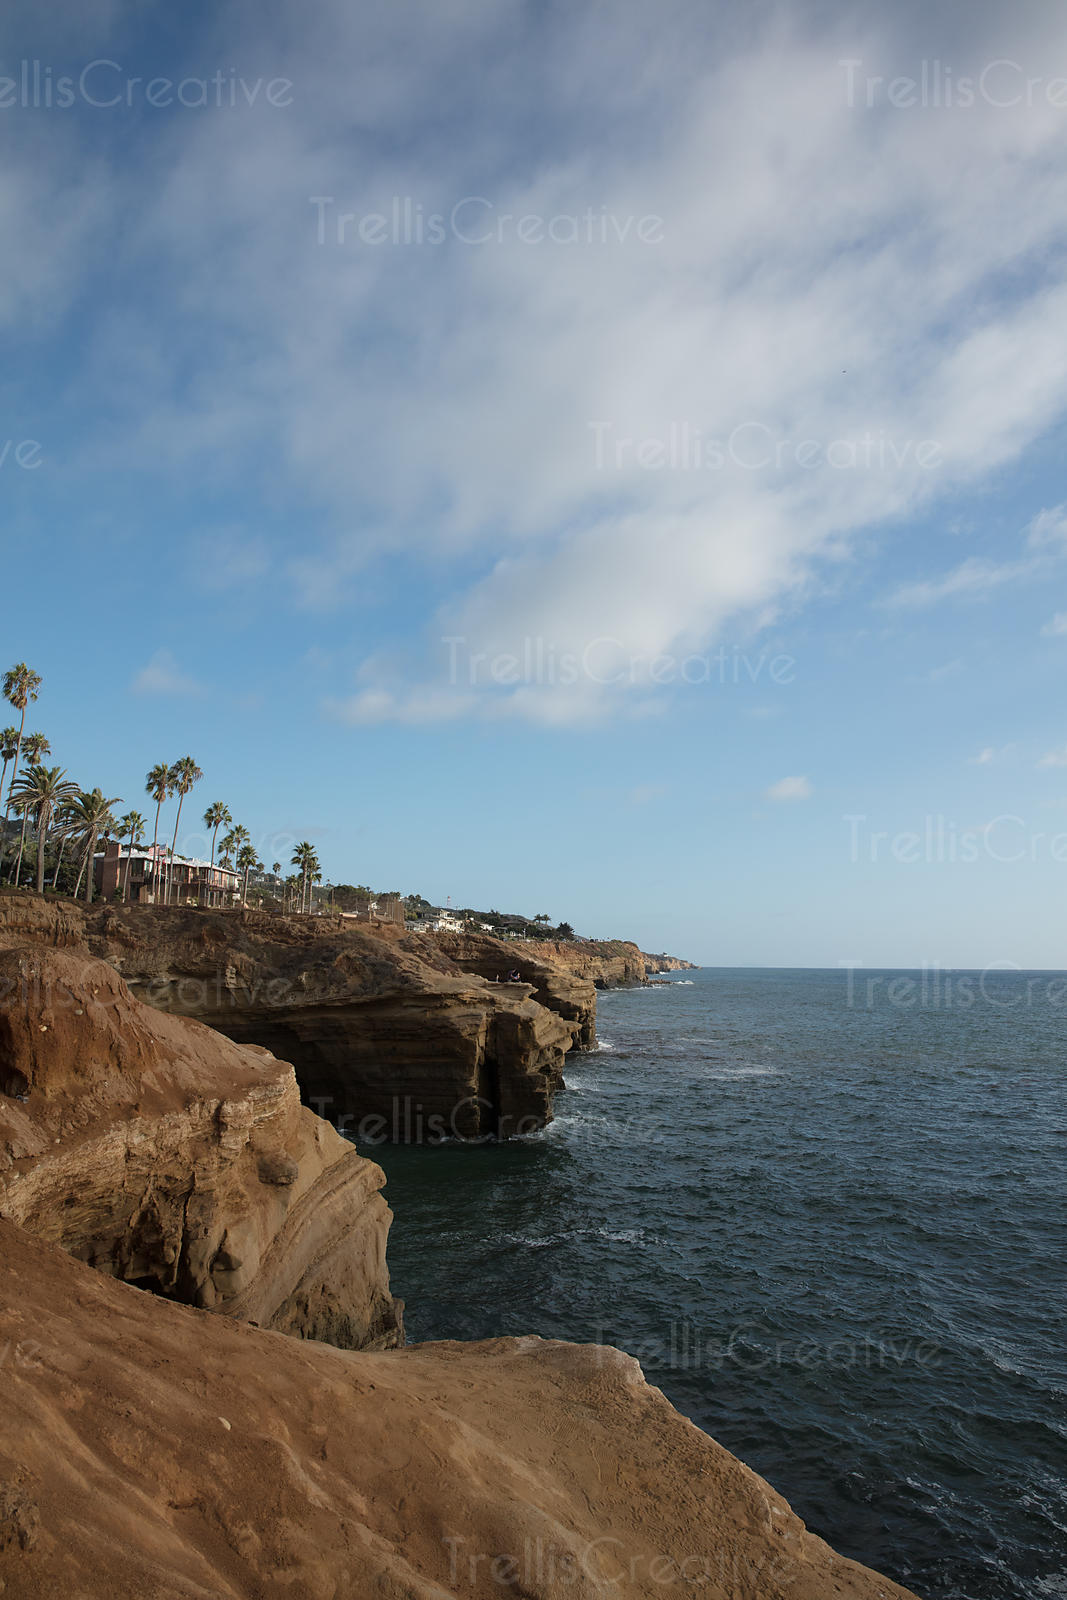 Sunset Cliffs coastline, Point Loma, Ocean Beach, San Diego, California, USA.